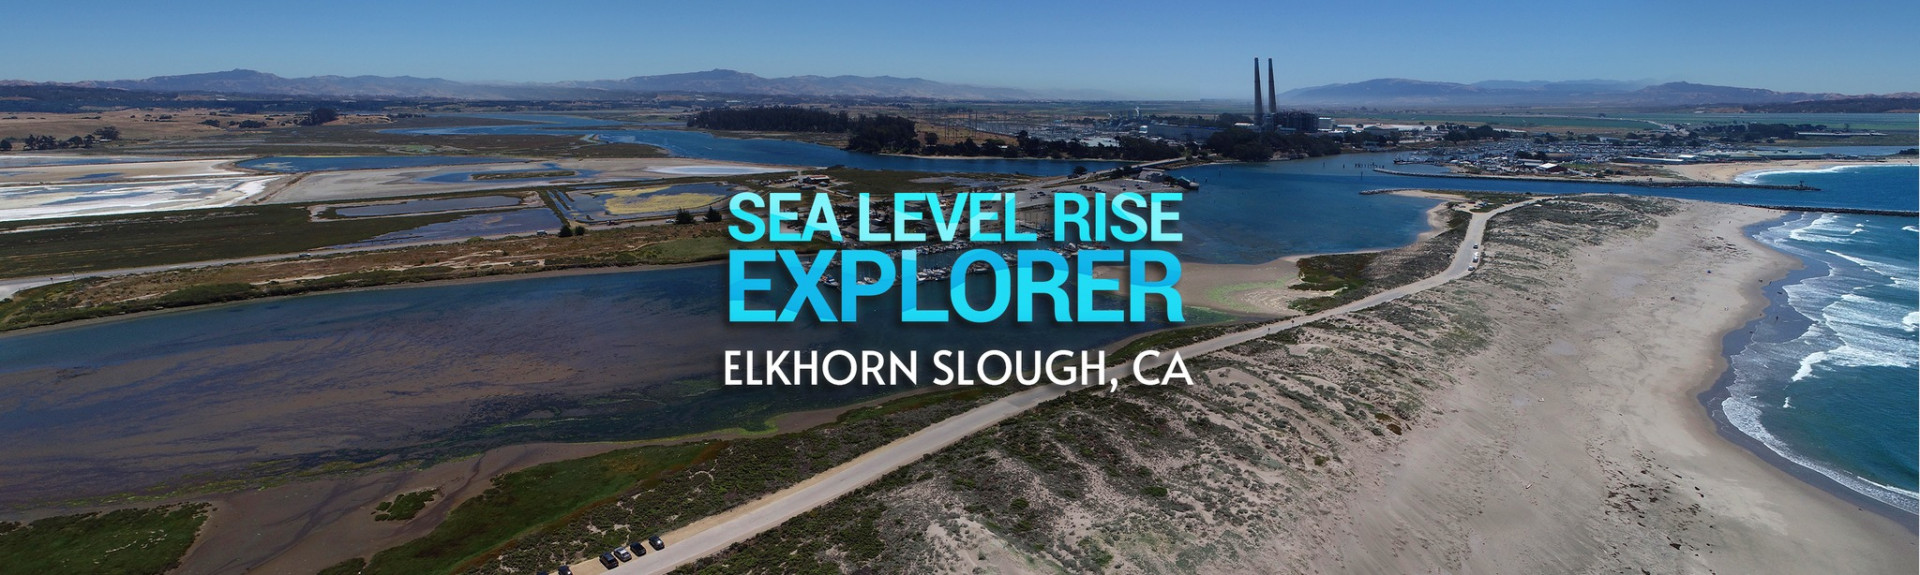 Sea Level Rise Explorer: Elkhorn Slough